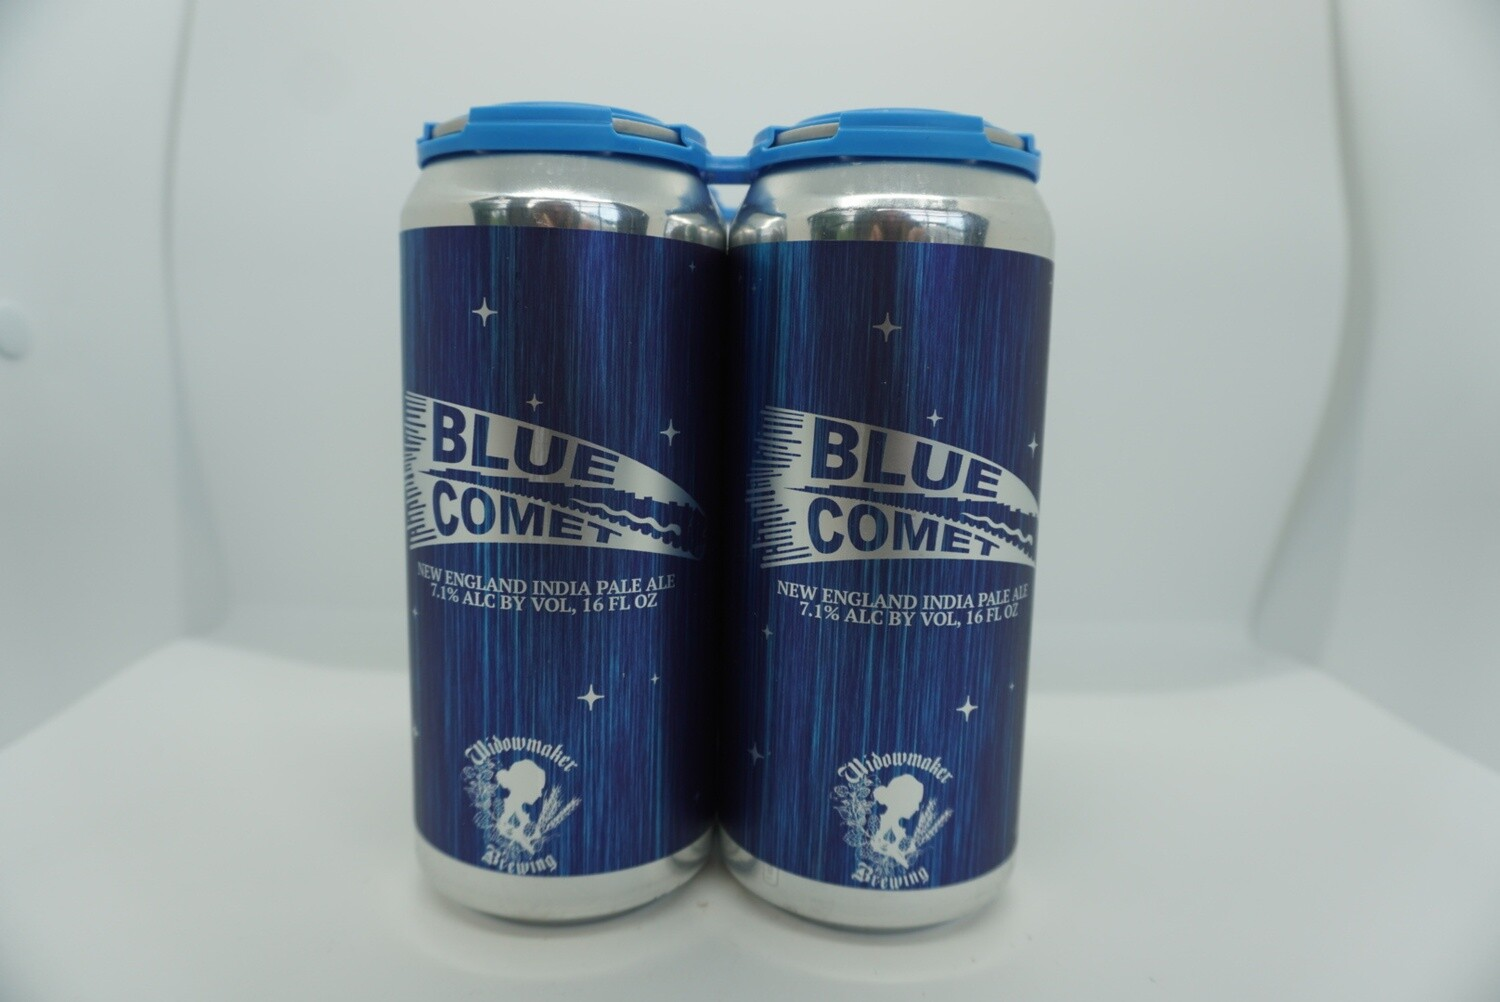 Widowmaker Brewing - Blue Comet - New England IPA - 7.1% ABV - 4 Pack